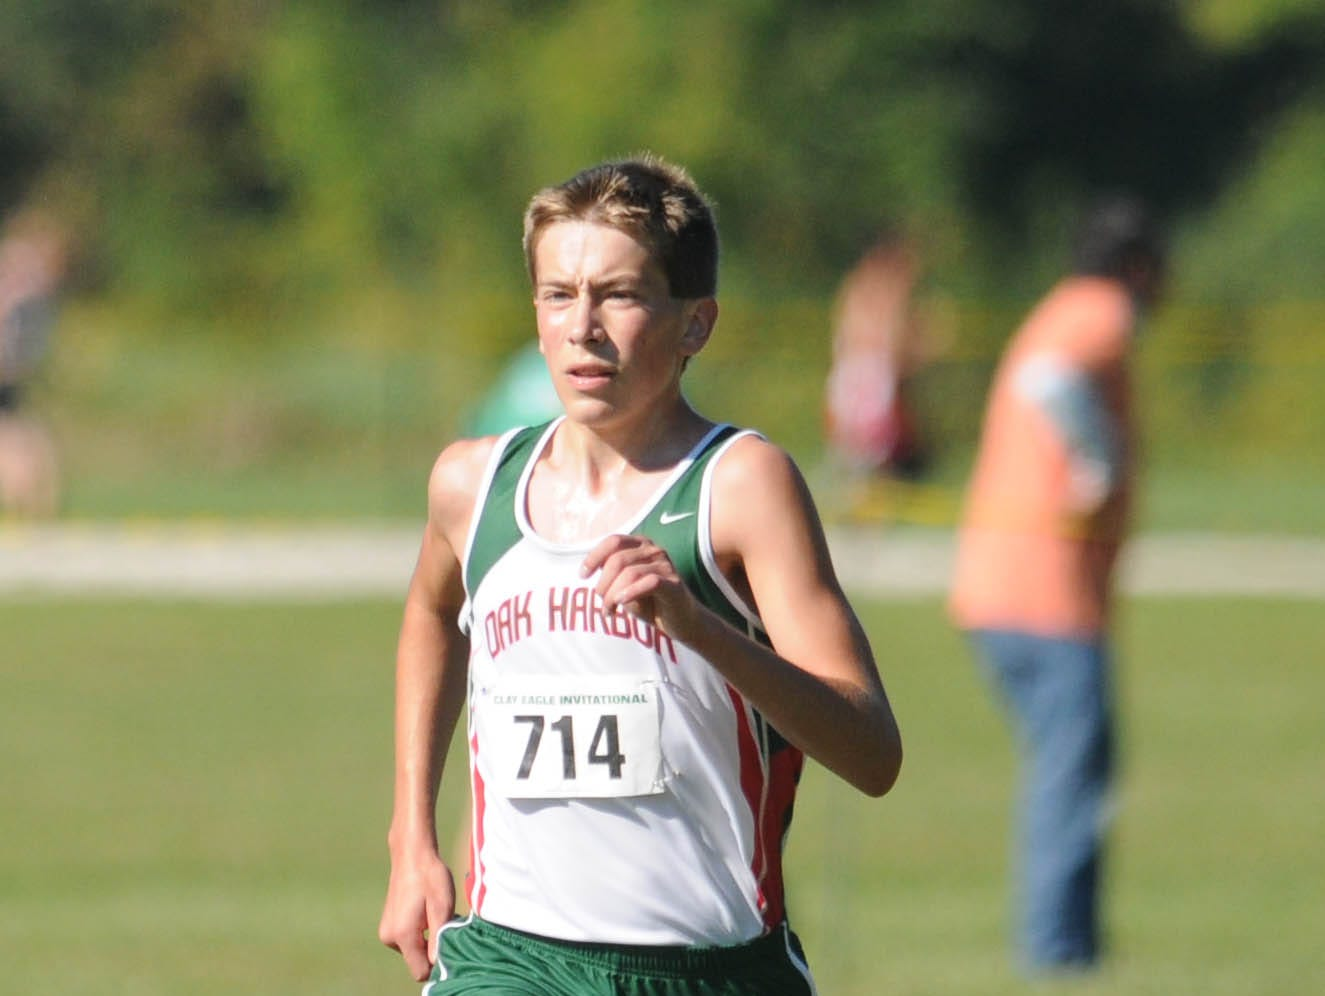 Oak Harbor's Jake Wistinghausen competes in a cross country invitational meet as a junior. He missed his junior track season and most of the next because of his struggle with Crohn's disease. Now, he currently is among the top two-milers in the region.